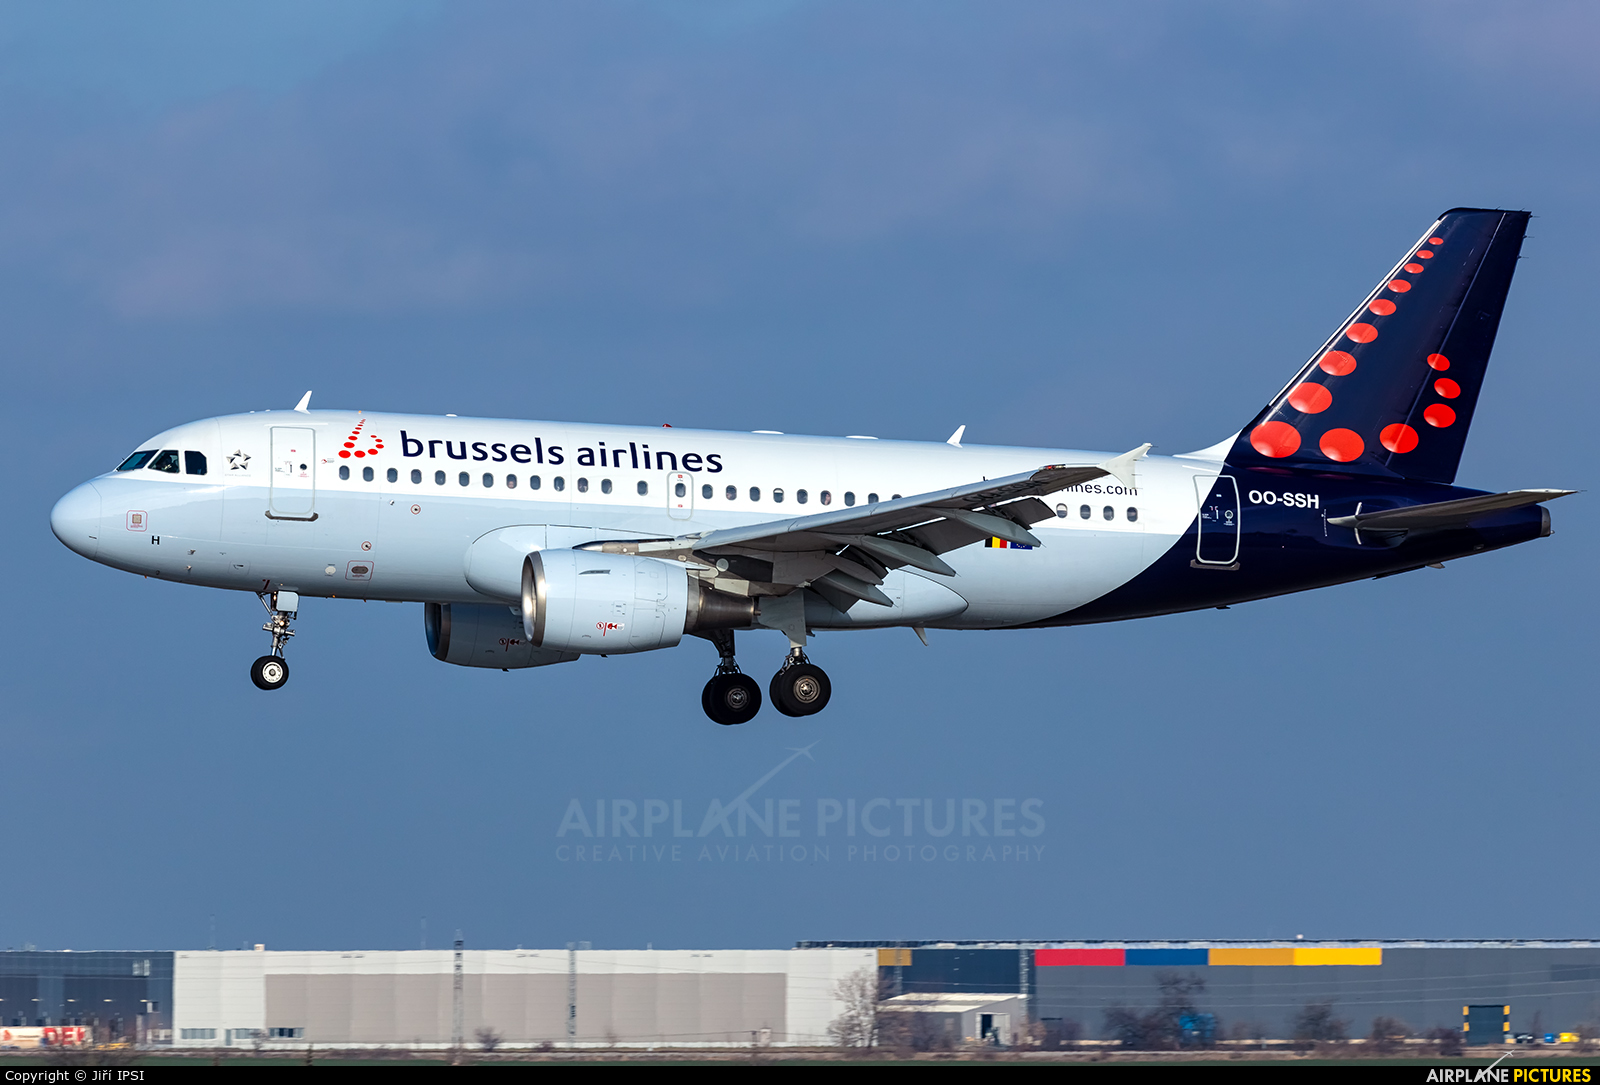 Brussels Airlines OO-SSH aircraft at Prague - Václav Havel